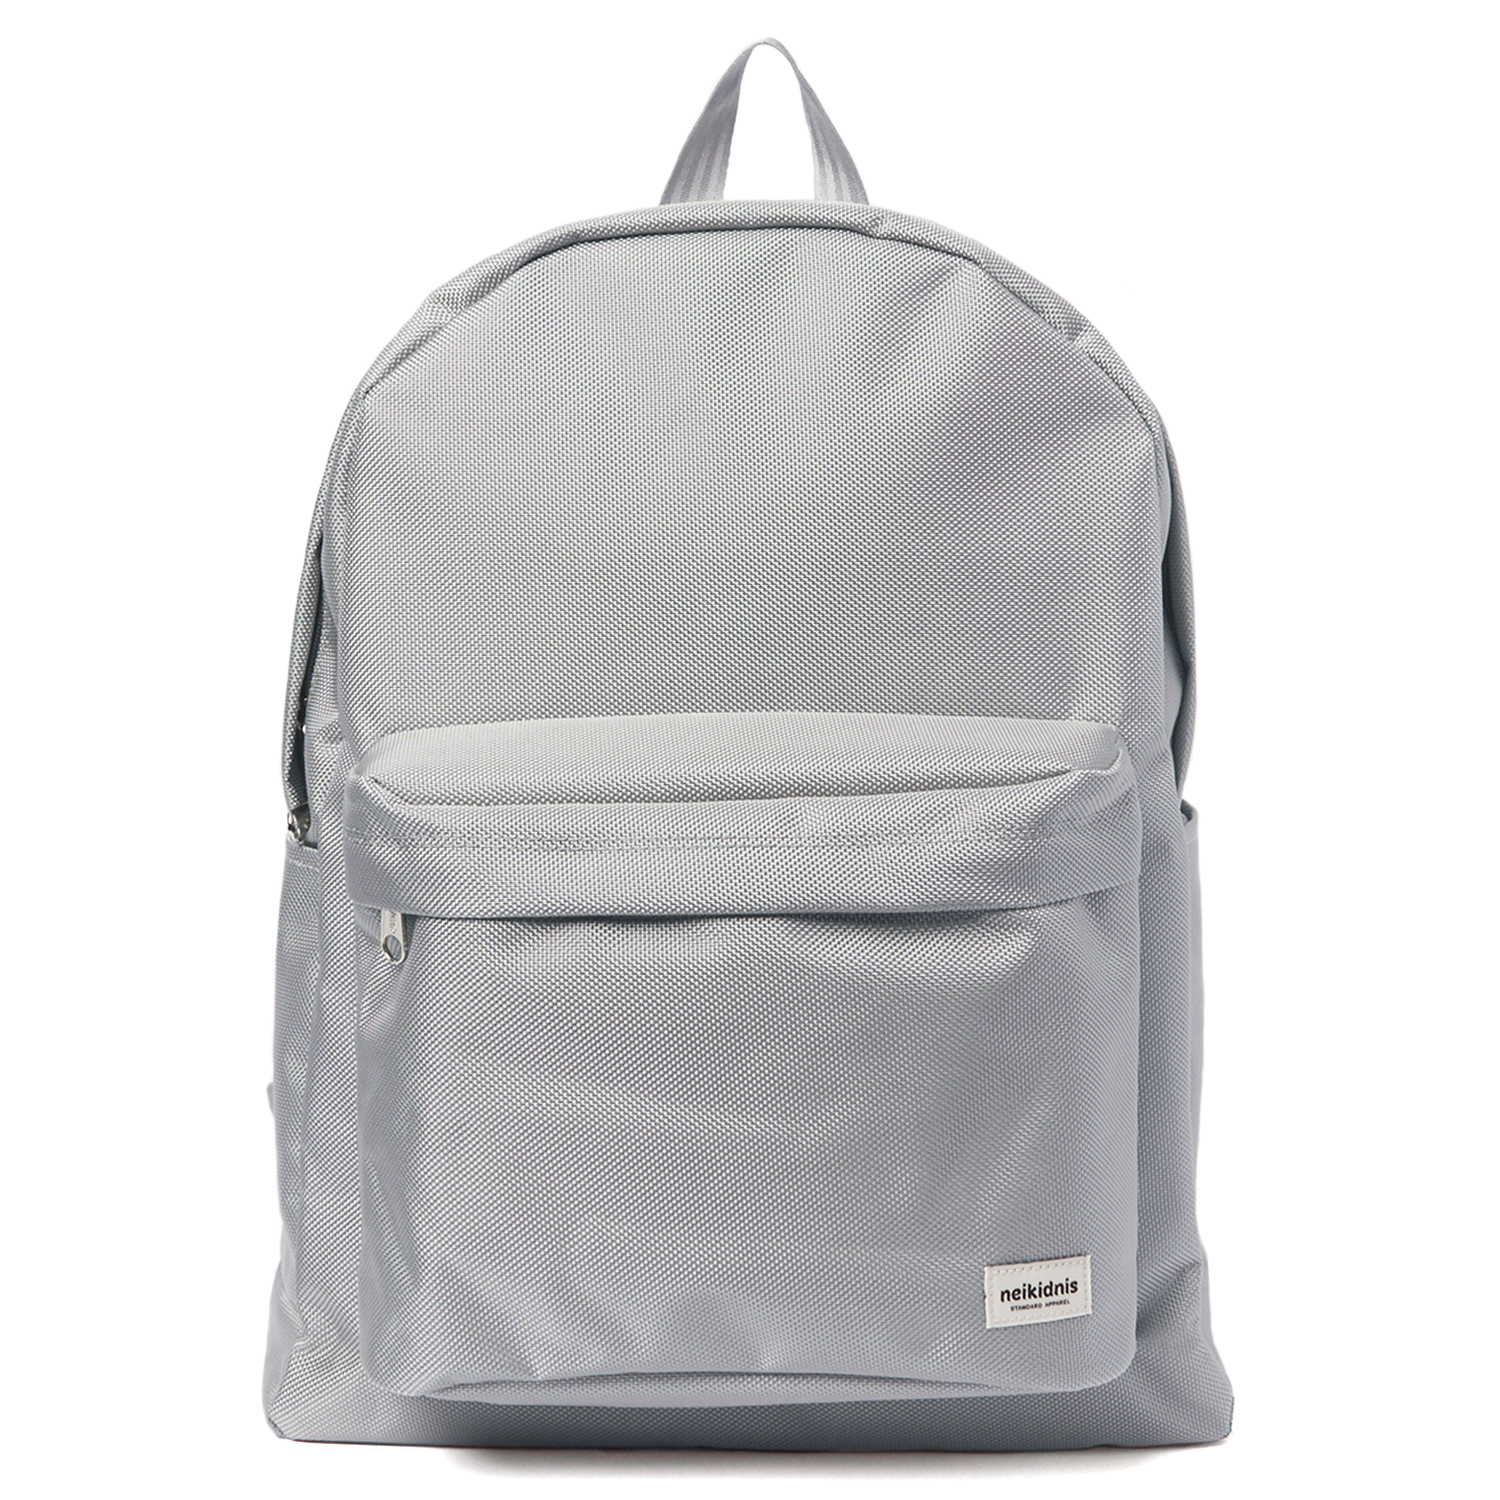 [80% SALE] 1680D BALLISTIC BACKPACK / GRAY